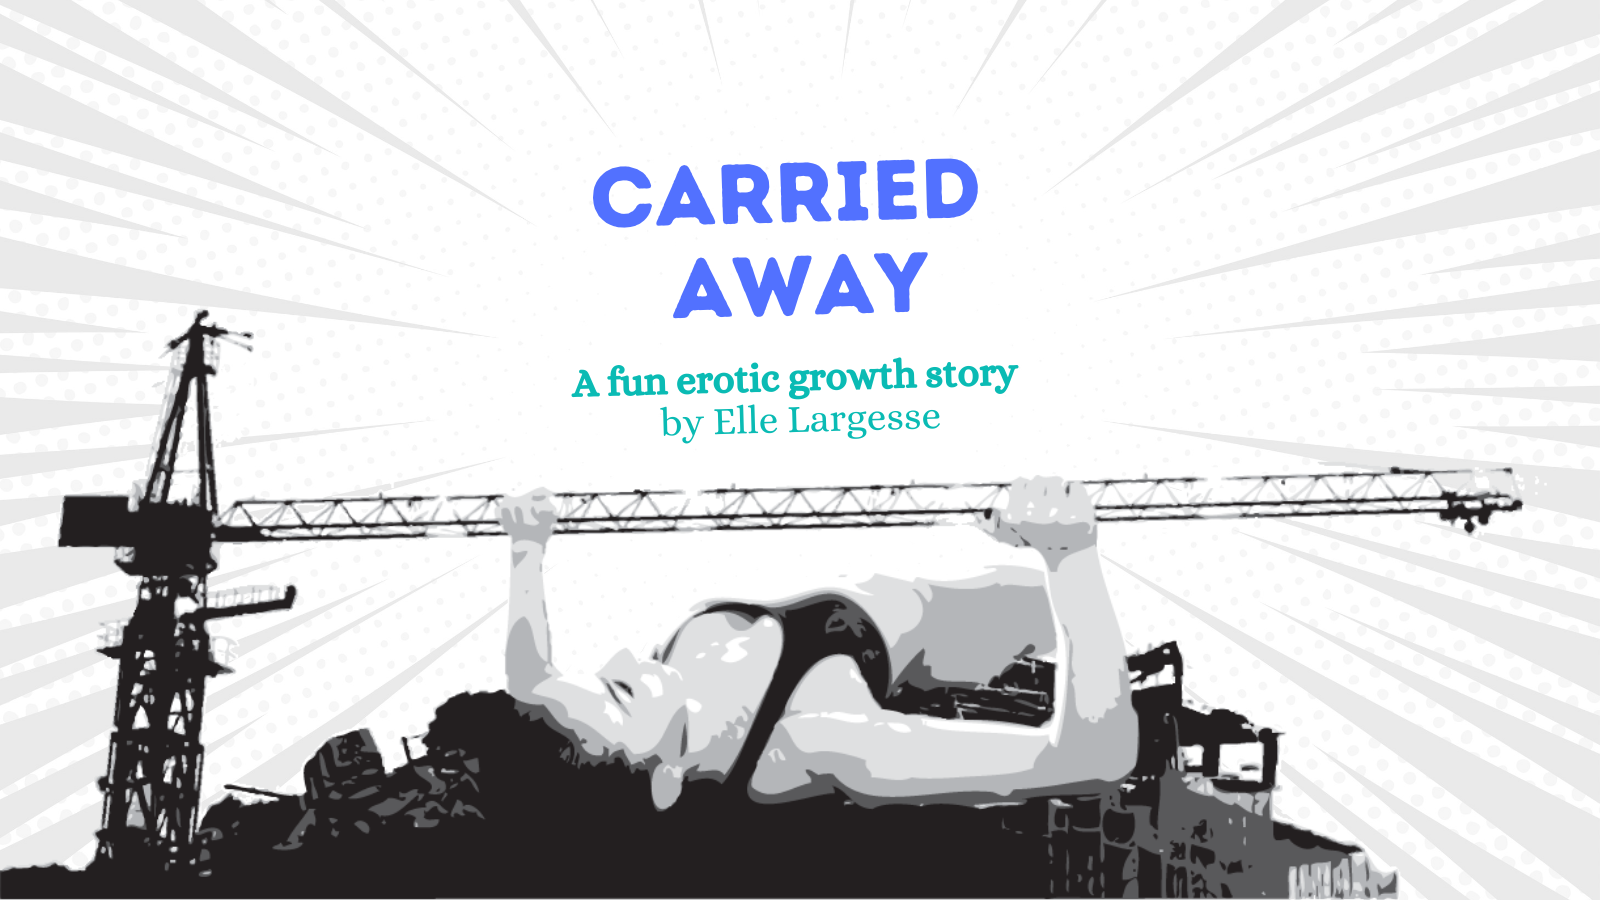 """An illustration of a giant woman bench pressing a construction crane. Her back is to a building and there is a lot of rubble around her. The image is a greyscale stylized in a pop art way, and there are lines and dots in a starburst pattern like a comic book. In the middle it says """"CARRIED AWAY: A fun erotic growth story by Elle Largesse"""""""